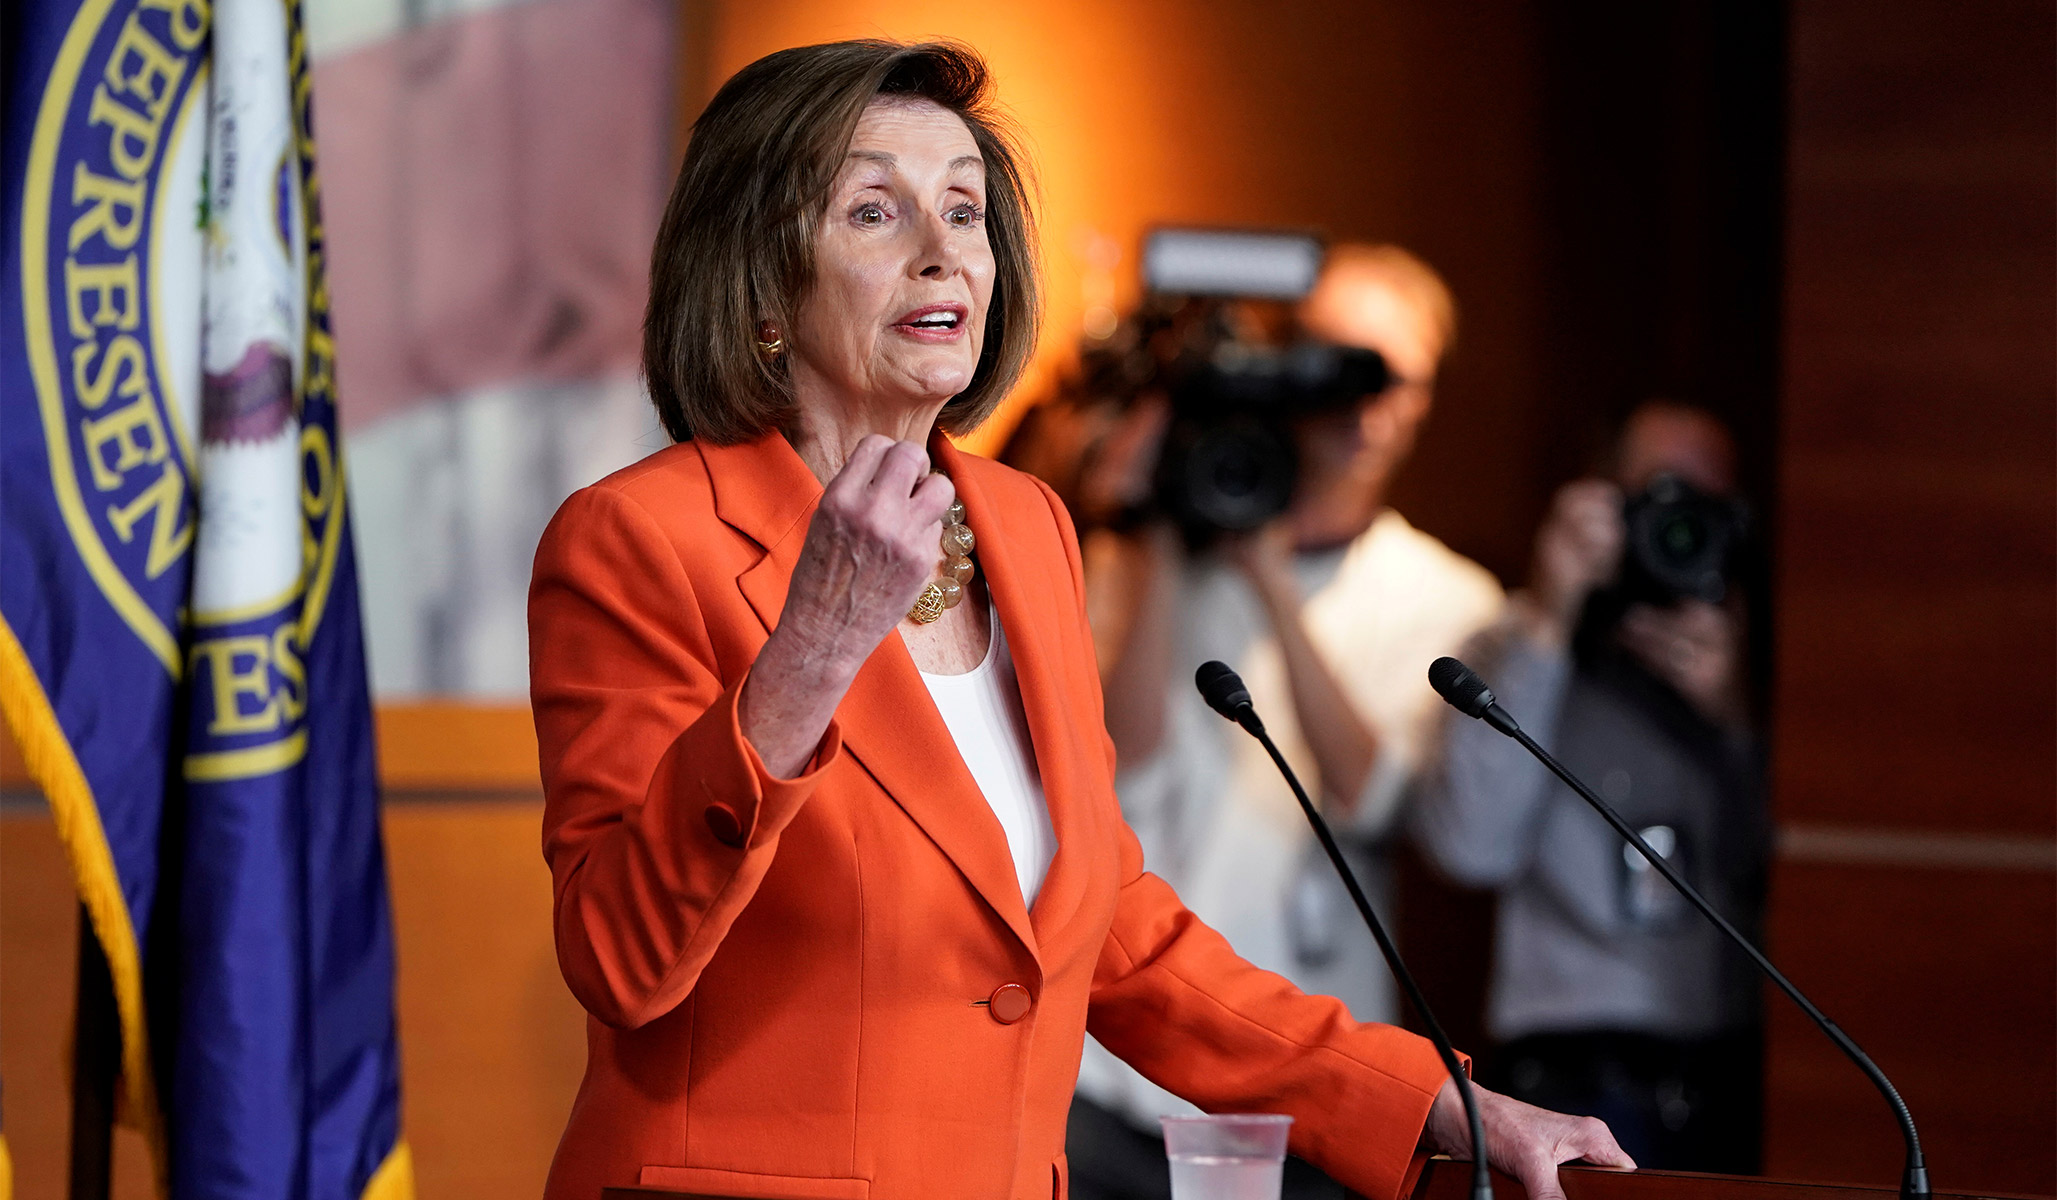 Pelosi Asks Nadler to Proceed with Drafting Articles of Impeachment